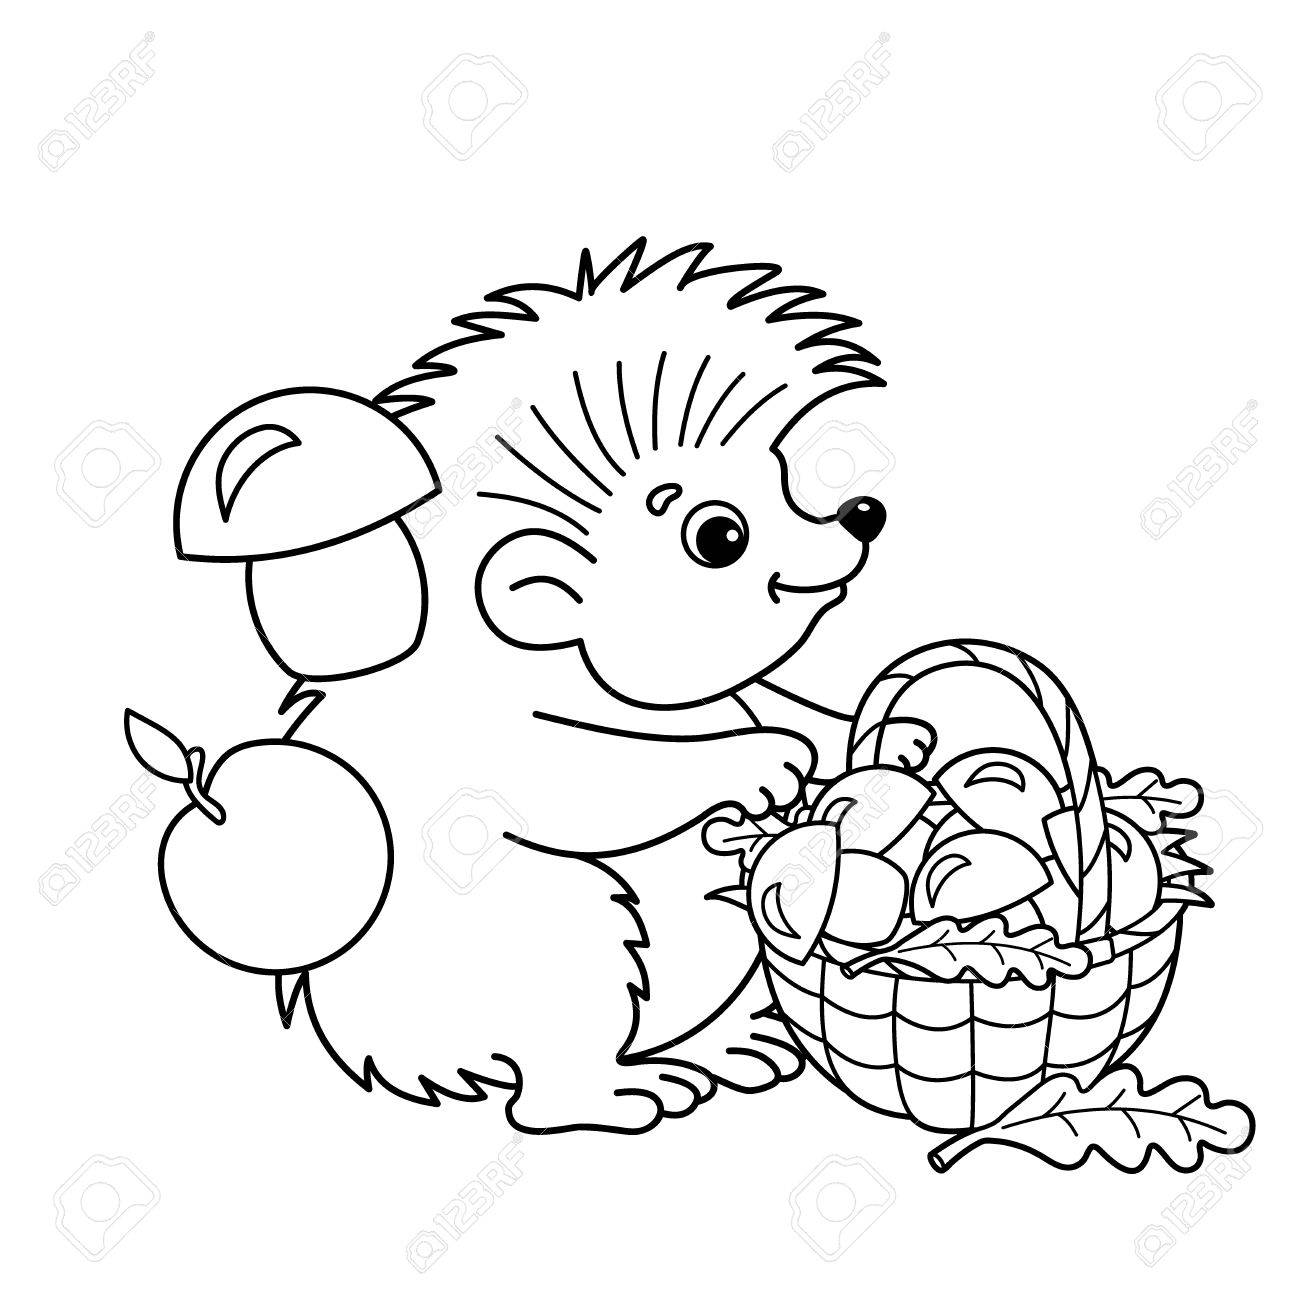 Coloring Page Outline Of Cartoon Hedgehog With Basket Of Mushrooms ...